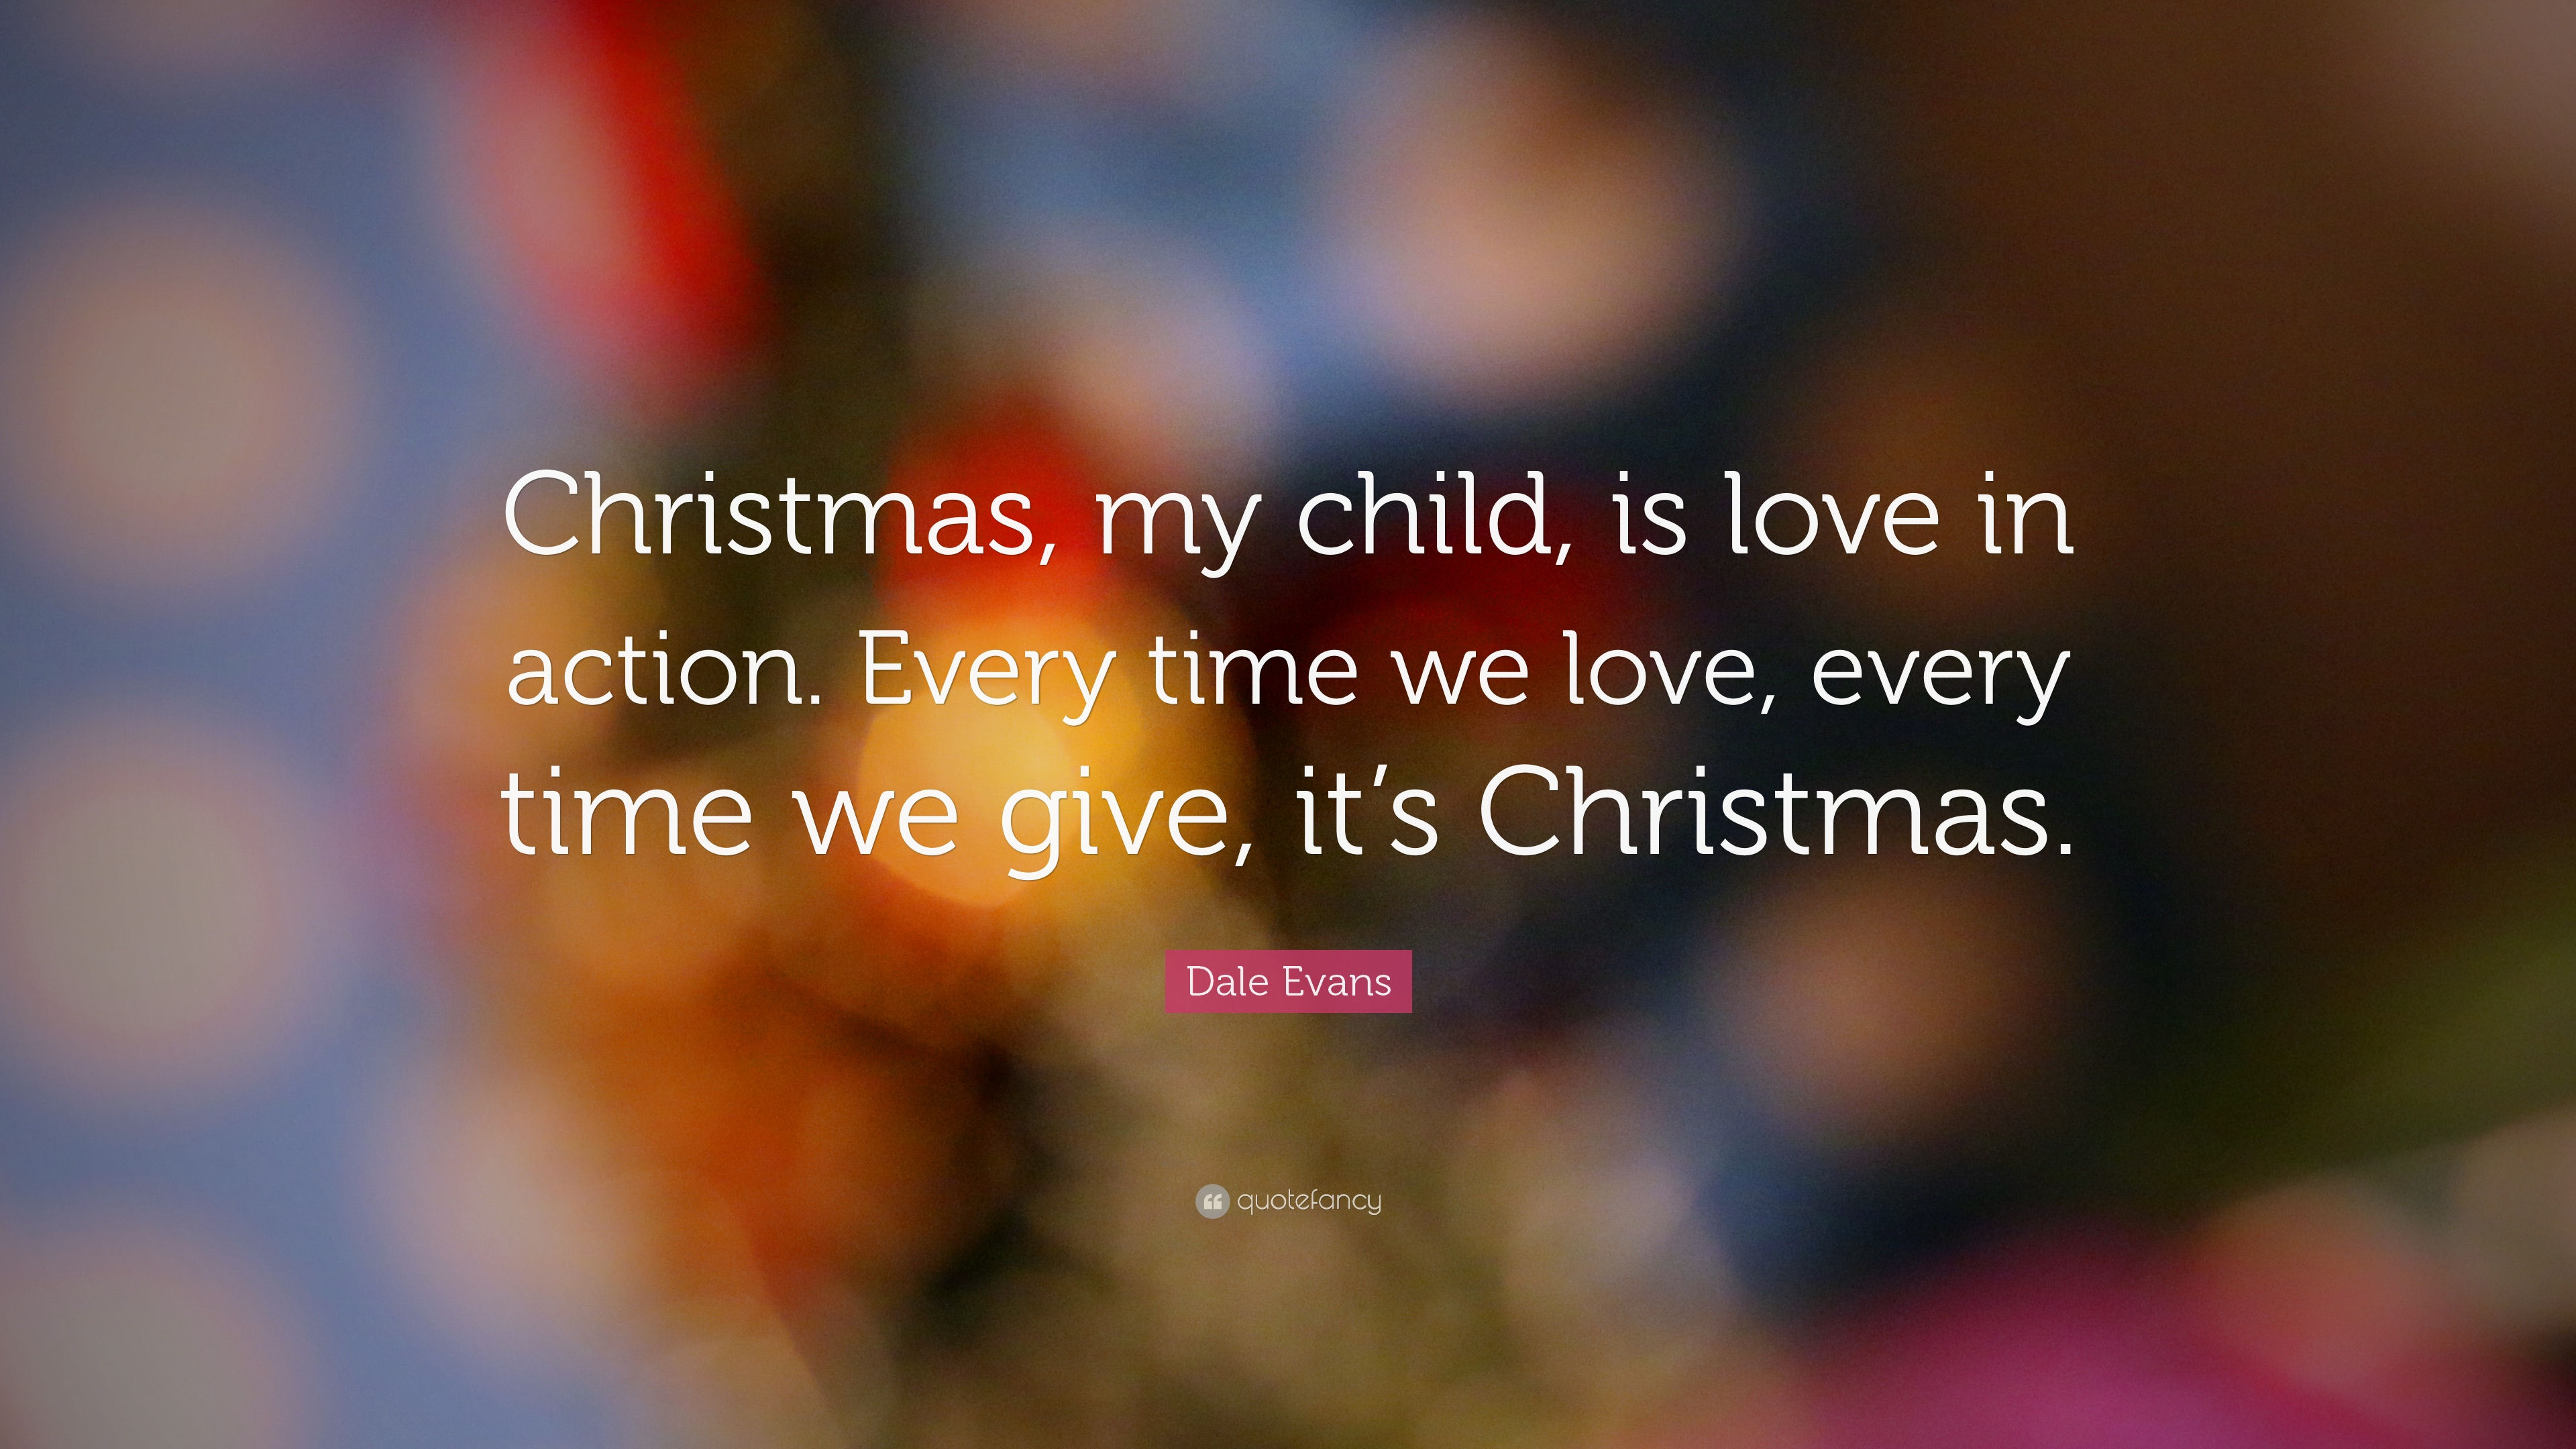 My Life My Friendship Quotes Wallpapers Dale Evans Quote Christmas My Child Is Love In Action